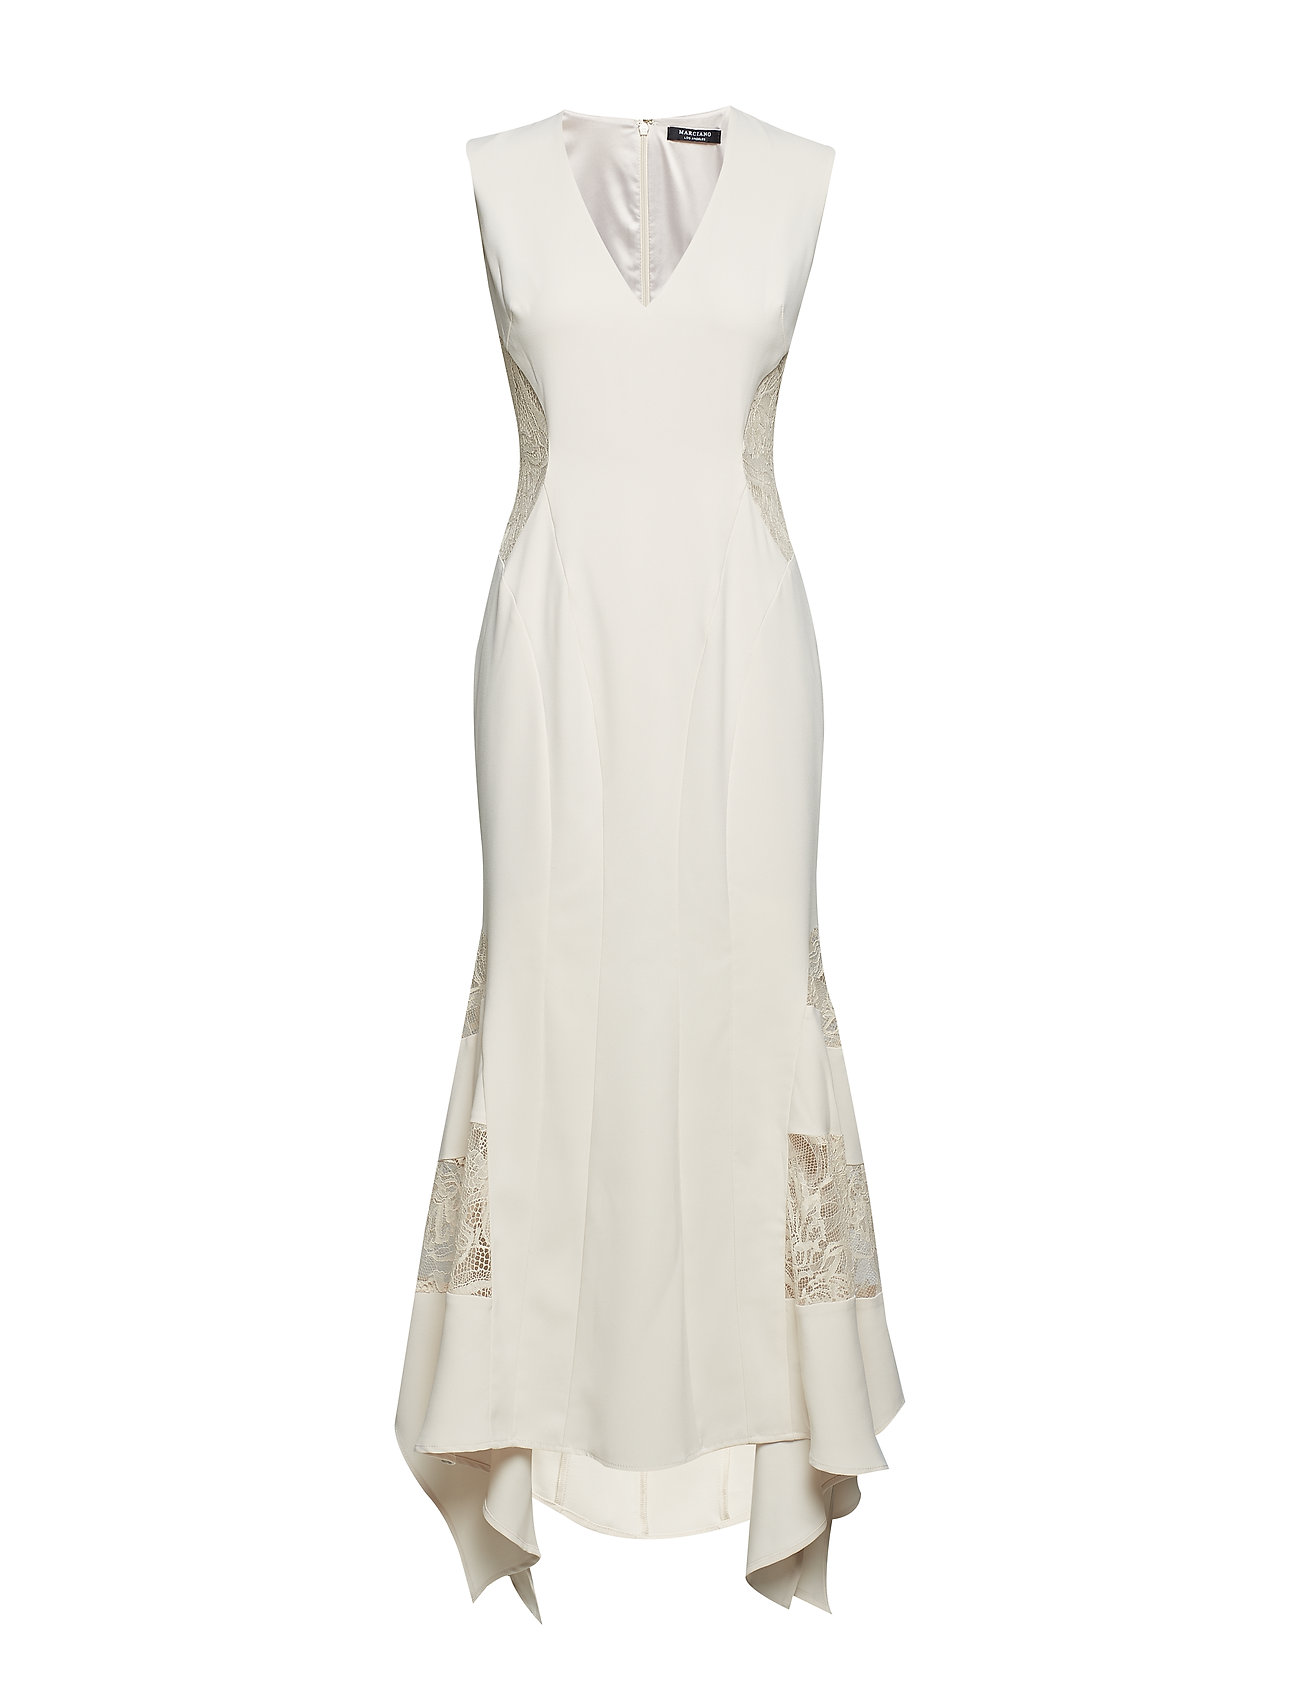 Marciano by GUESS LIZA DRESS - WHITE DENEUVE